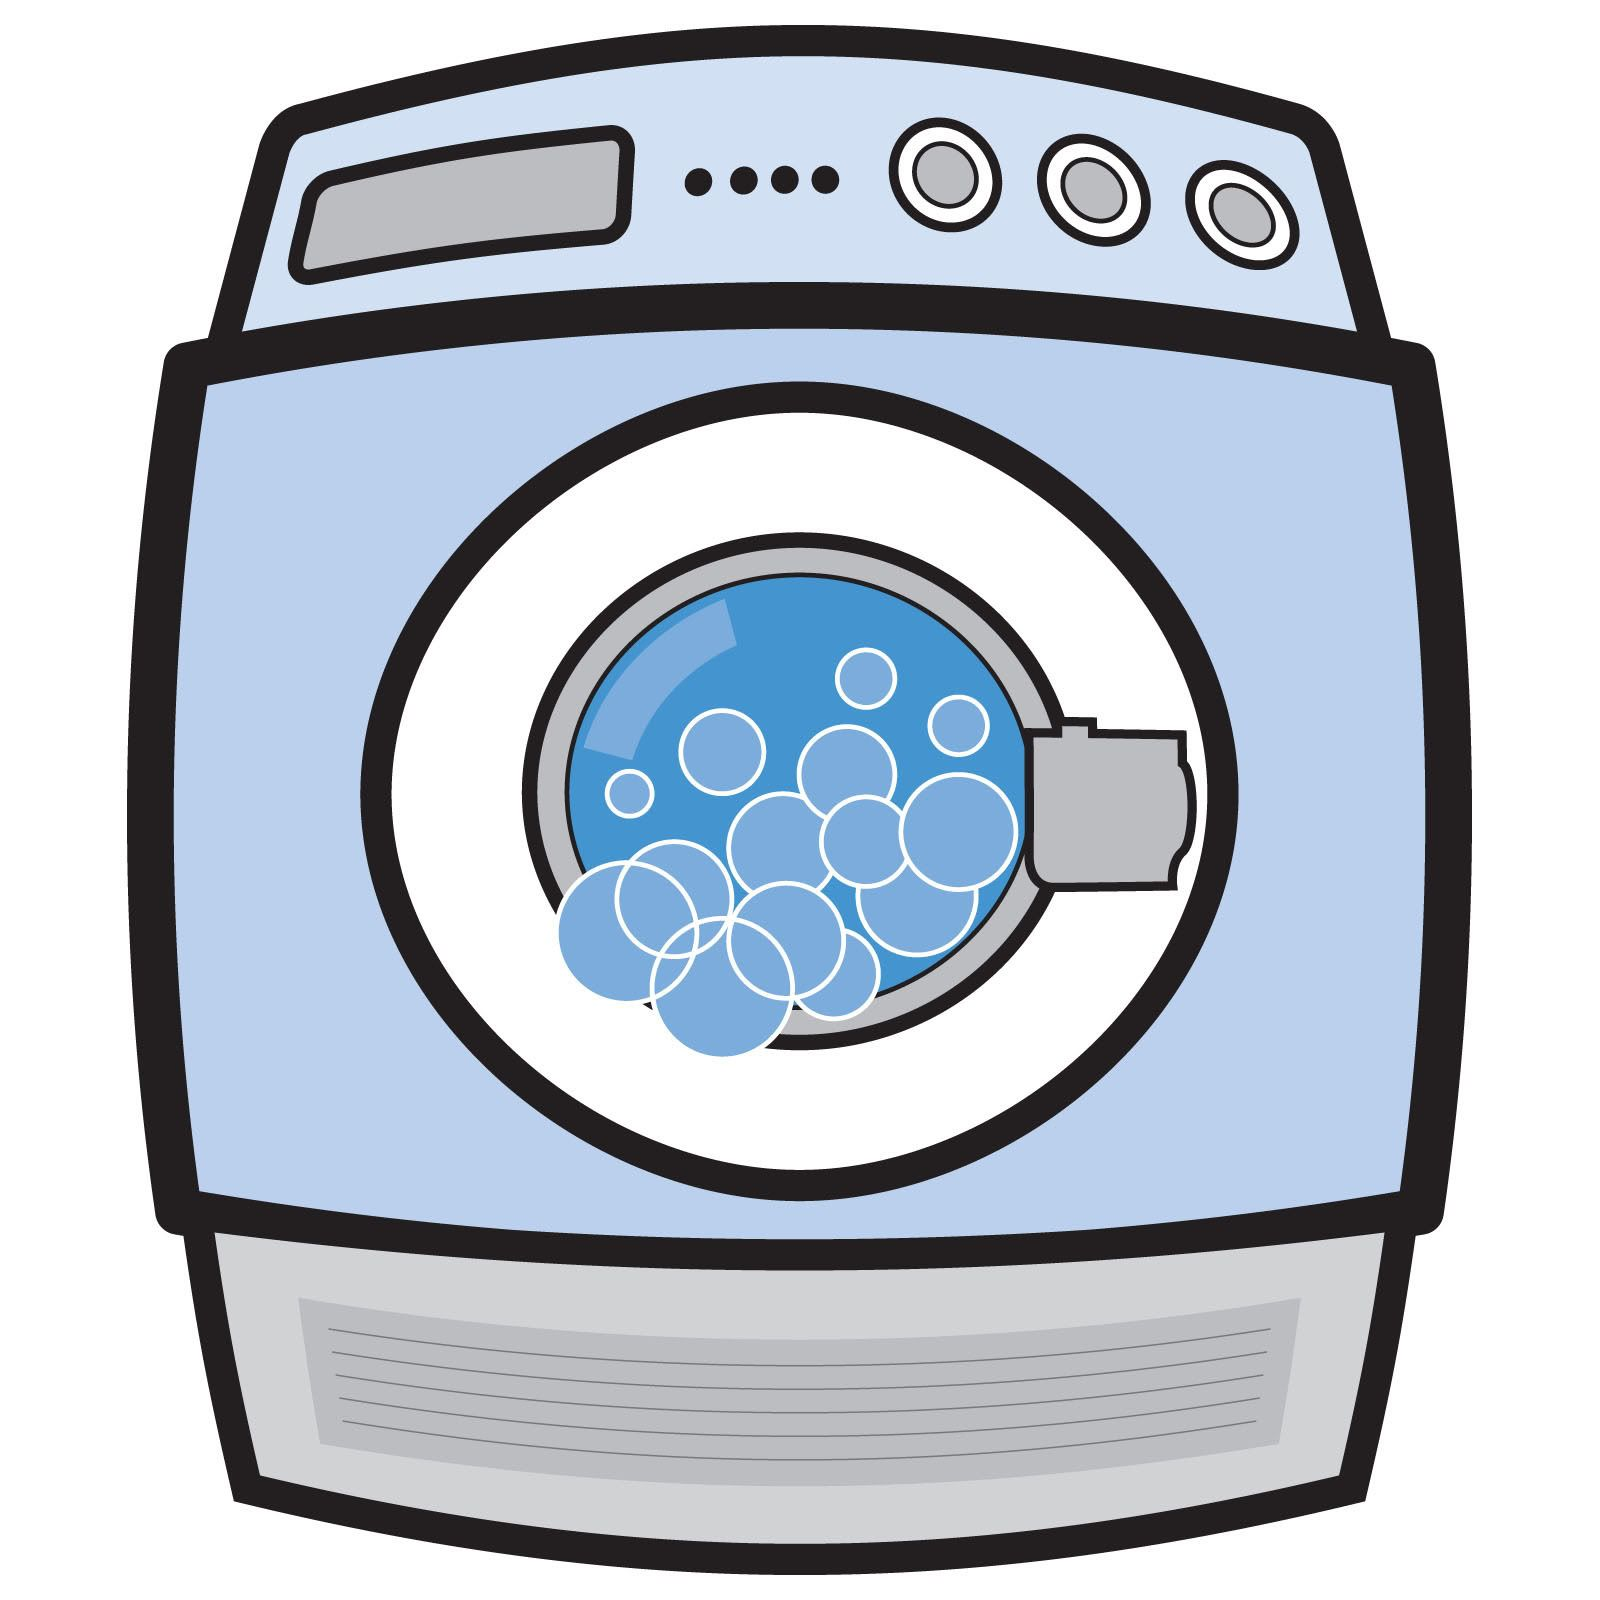 Dryer clipart washing machine. Leaves mysterious spots on